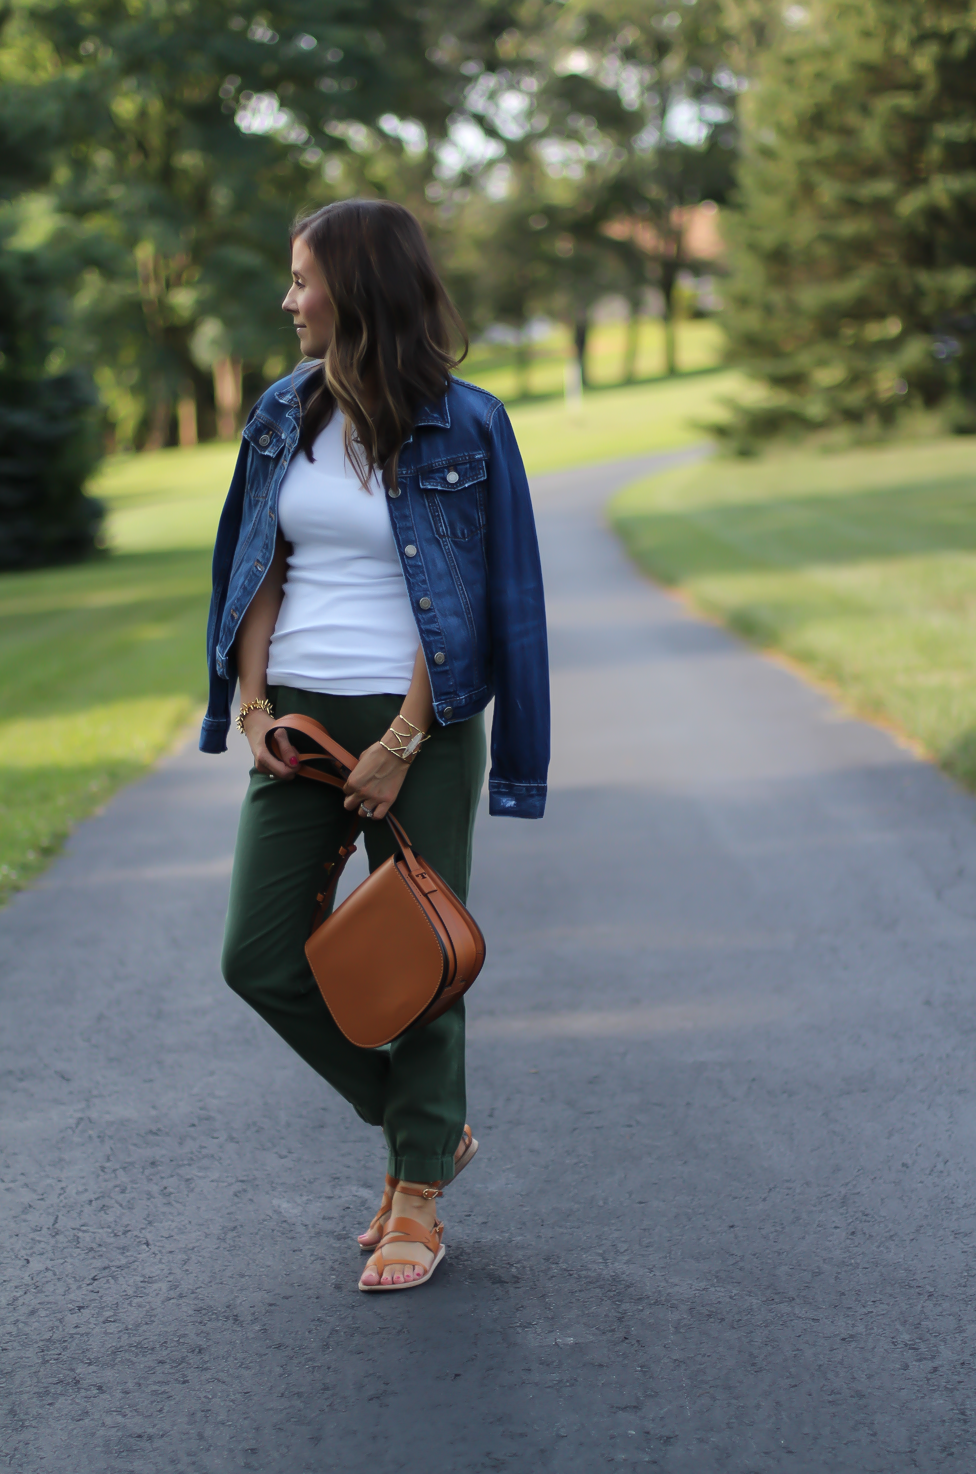 Army Green Joggers, White Sleeveless Shell Tee, Gladiator Sandals, Saddle Bag, J.Crew, tory Burch, Ancient Gladiator 4